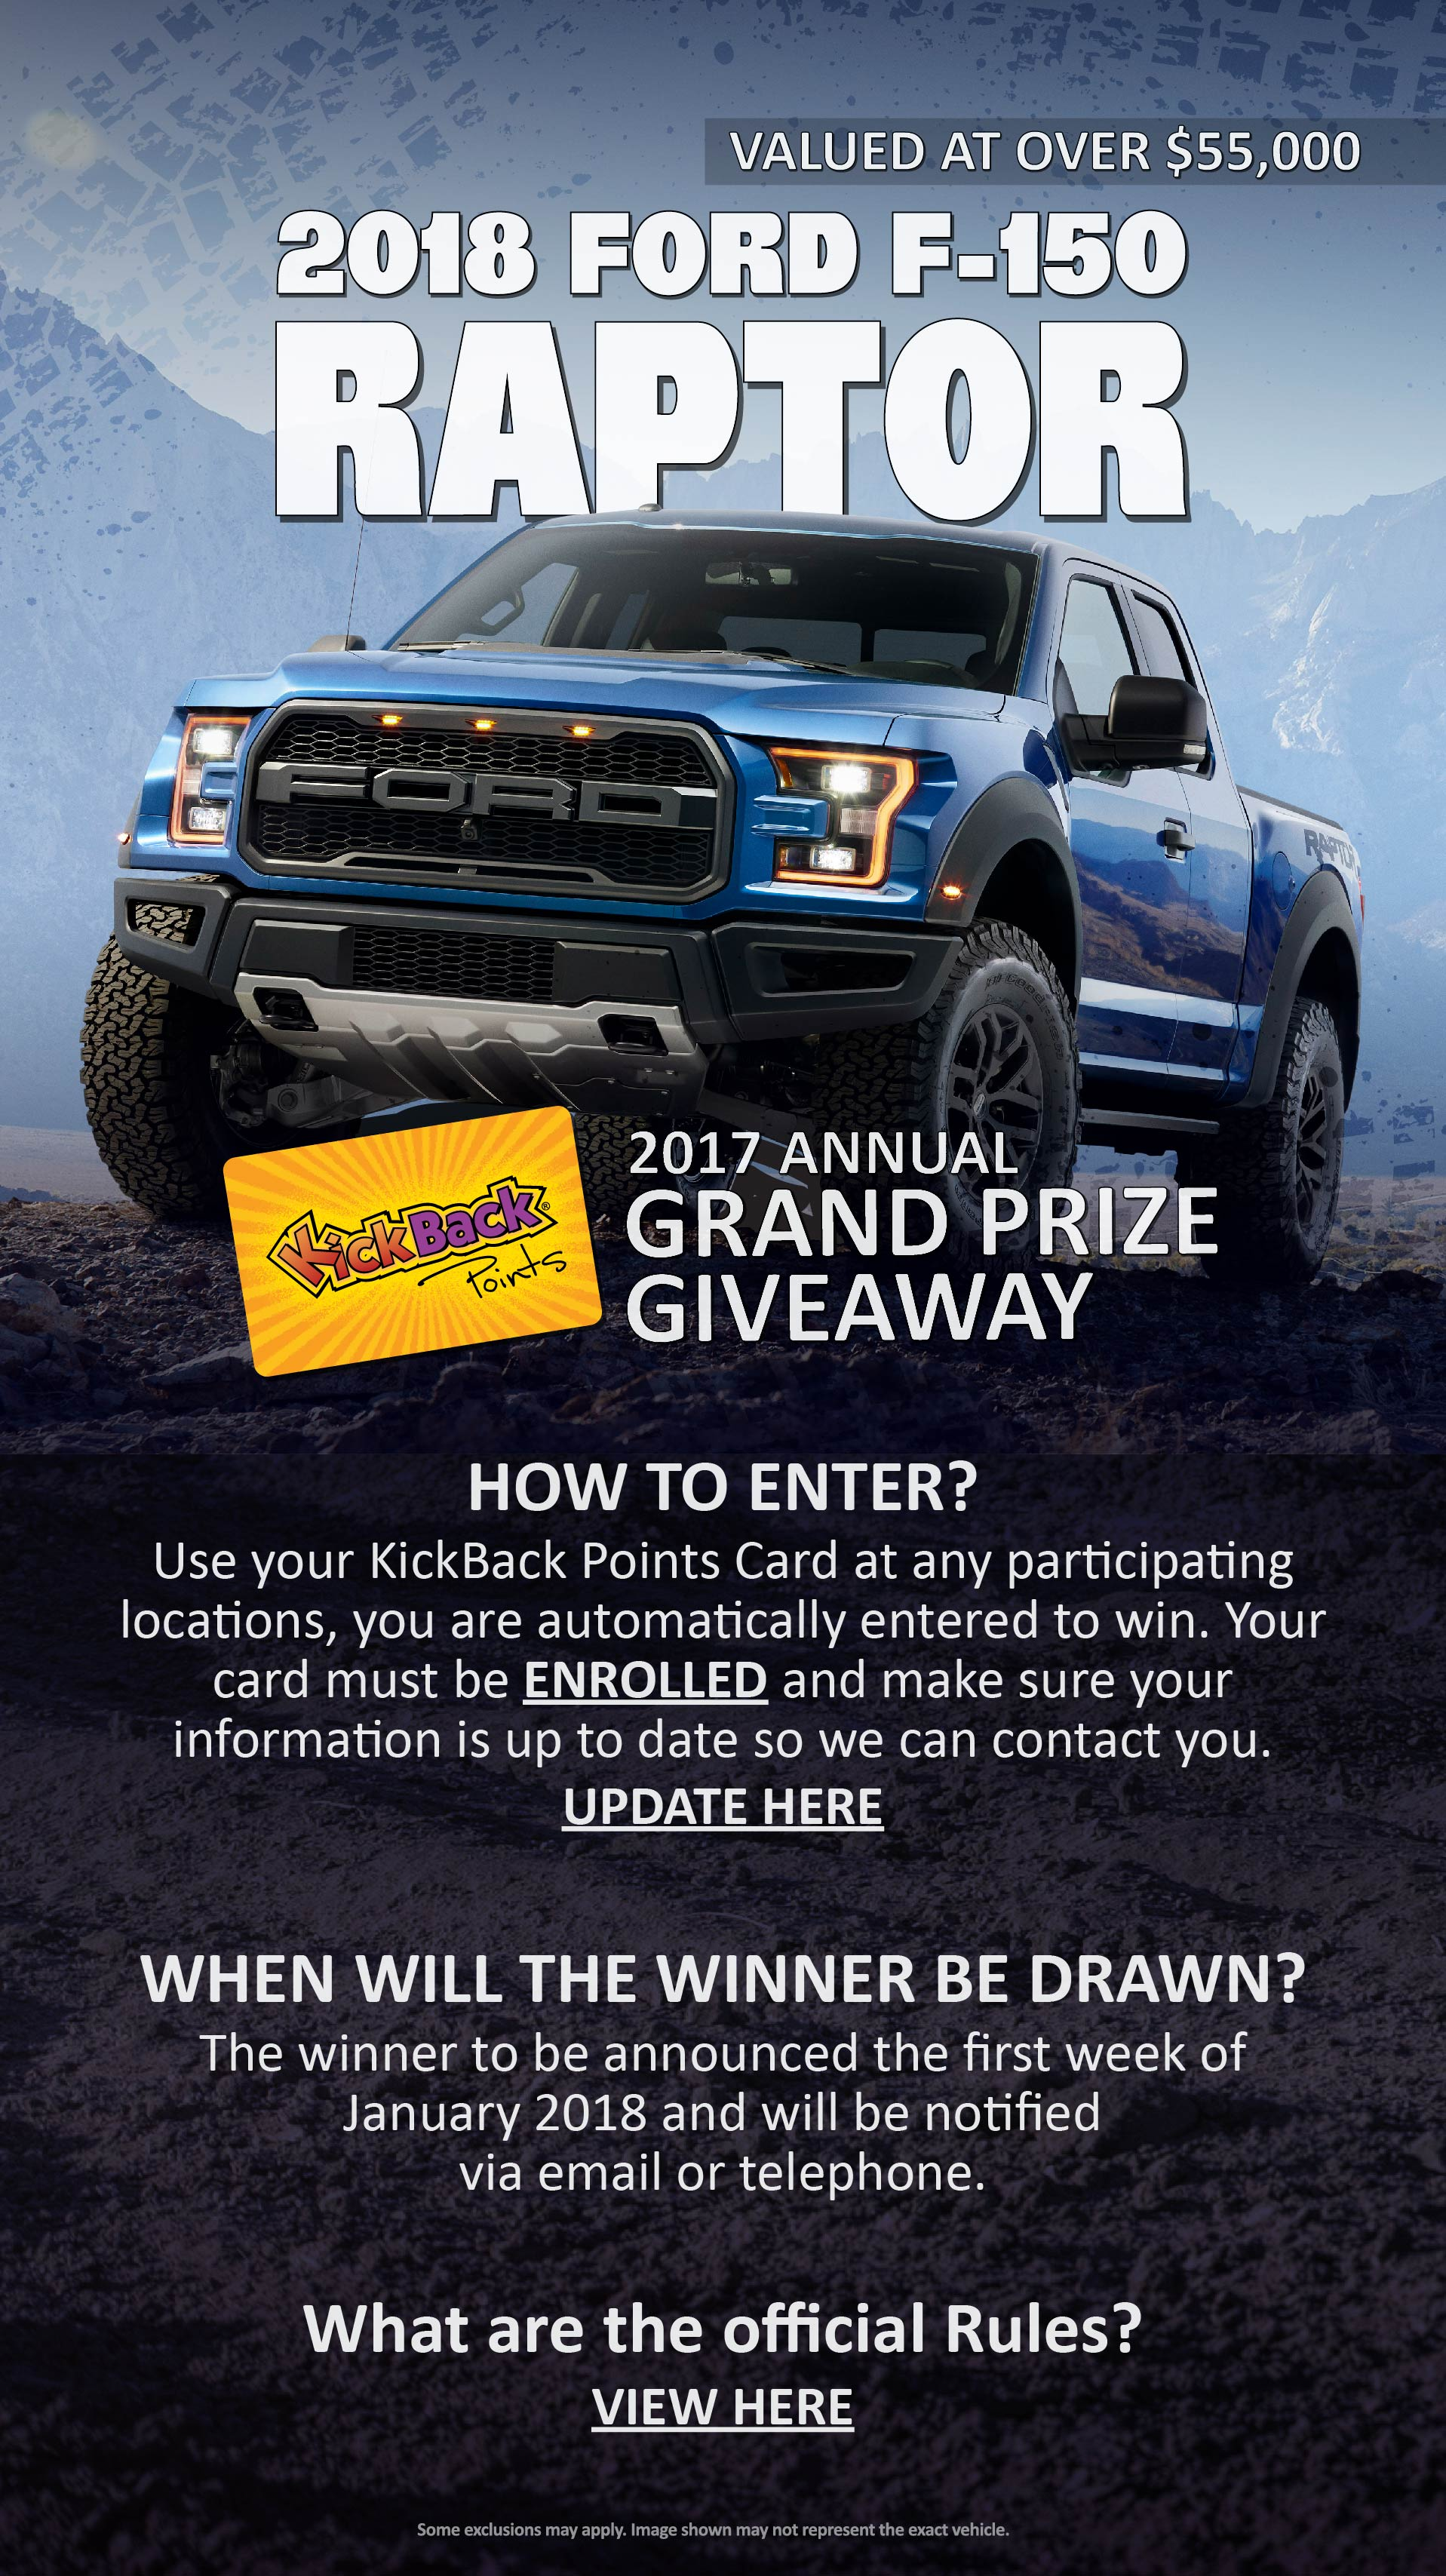 KickBack Points 2017 Annual Grand Prize Giveaway